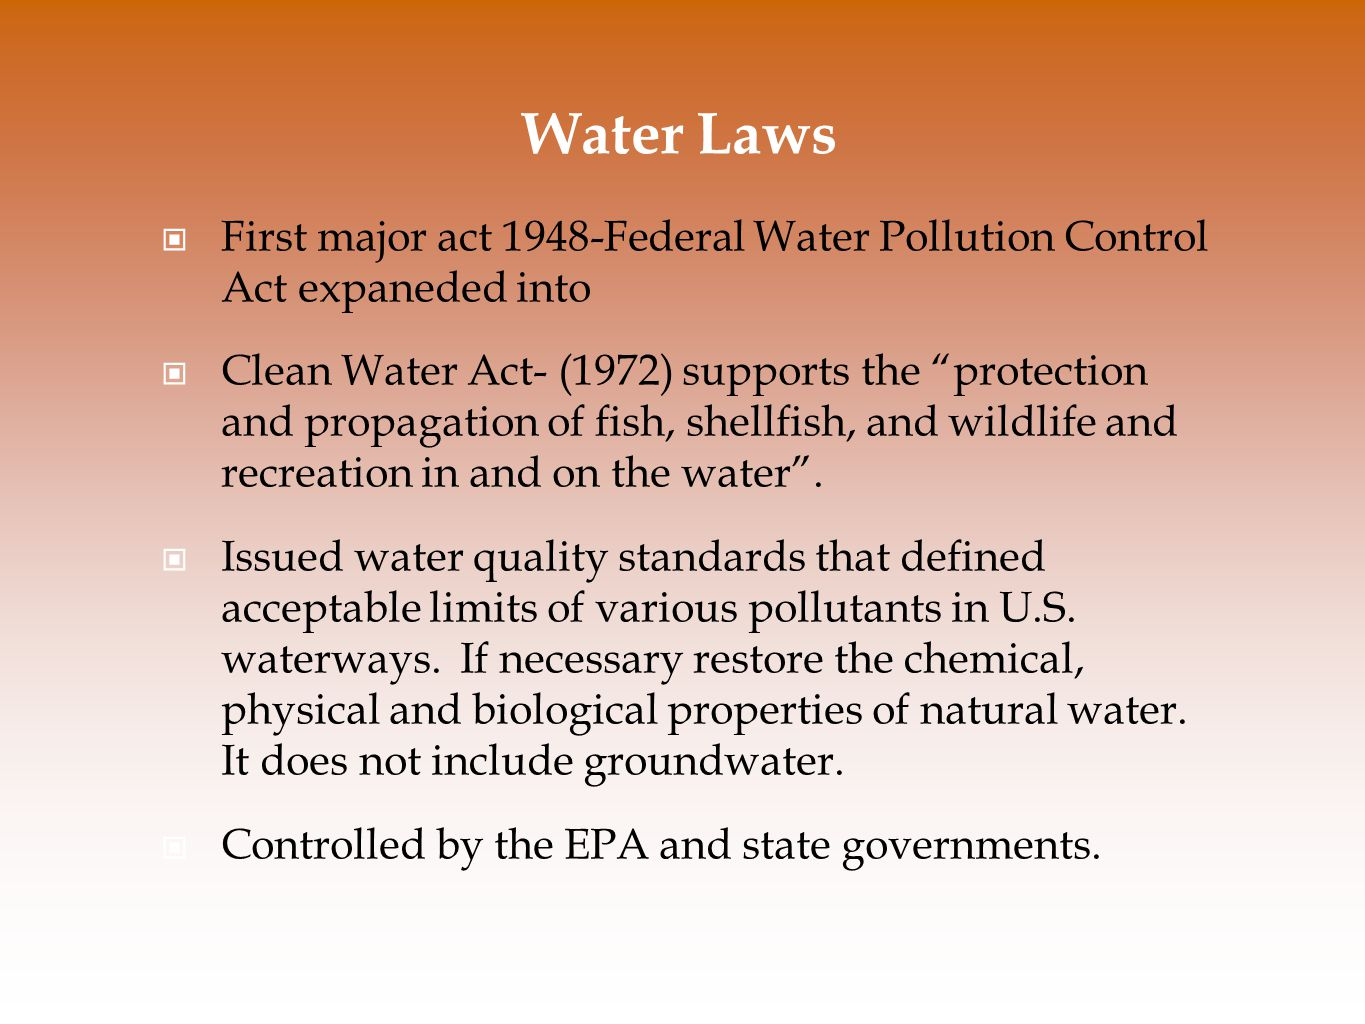 Water Laws First major act 1948-Federal Water Pollution Control Act expaneded into Clean Water Act- (1972) supports the protection and propagation of fish, shellfish, and wildlife and recreation in and on the water .